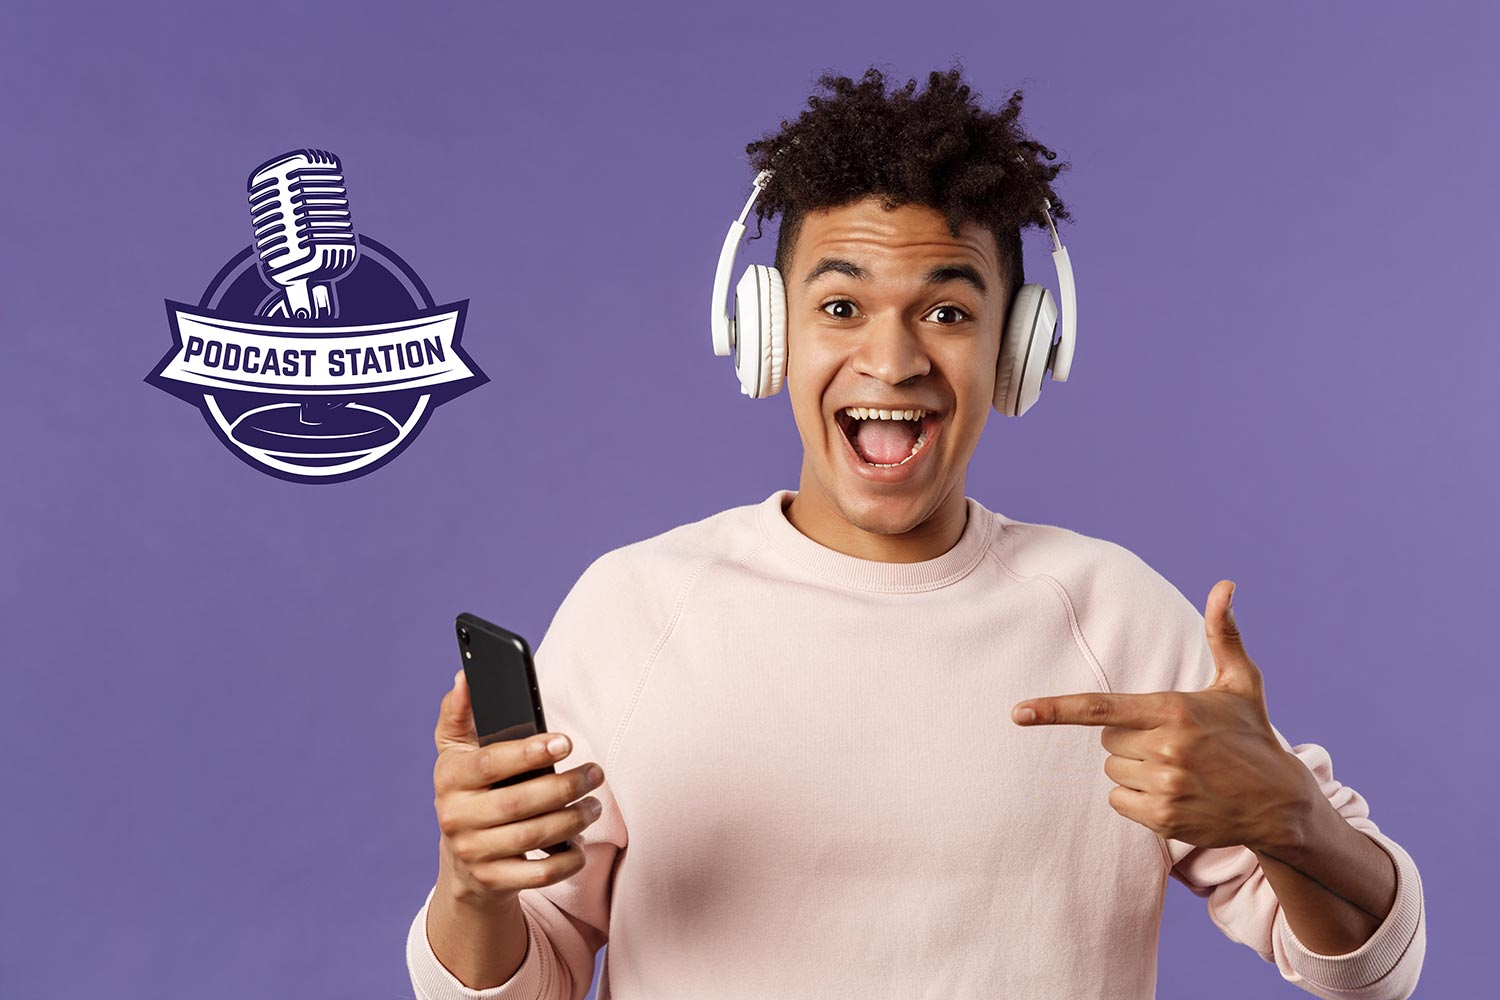 Young man listening to free podcast station